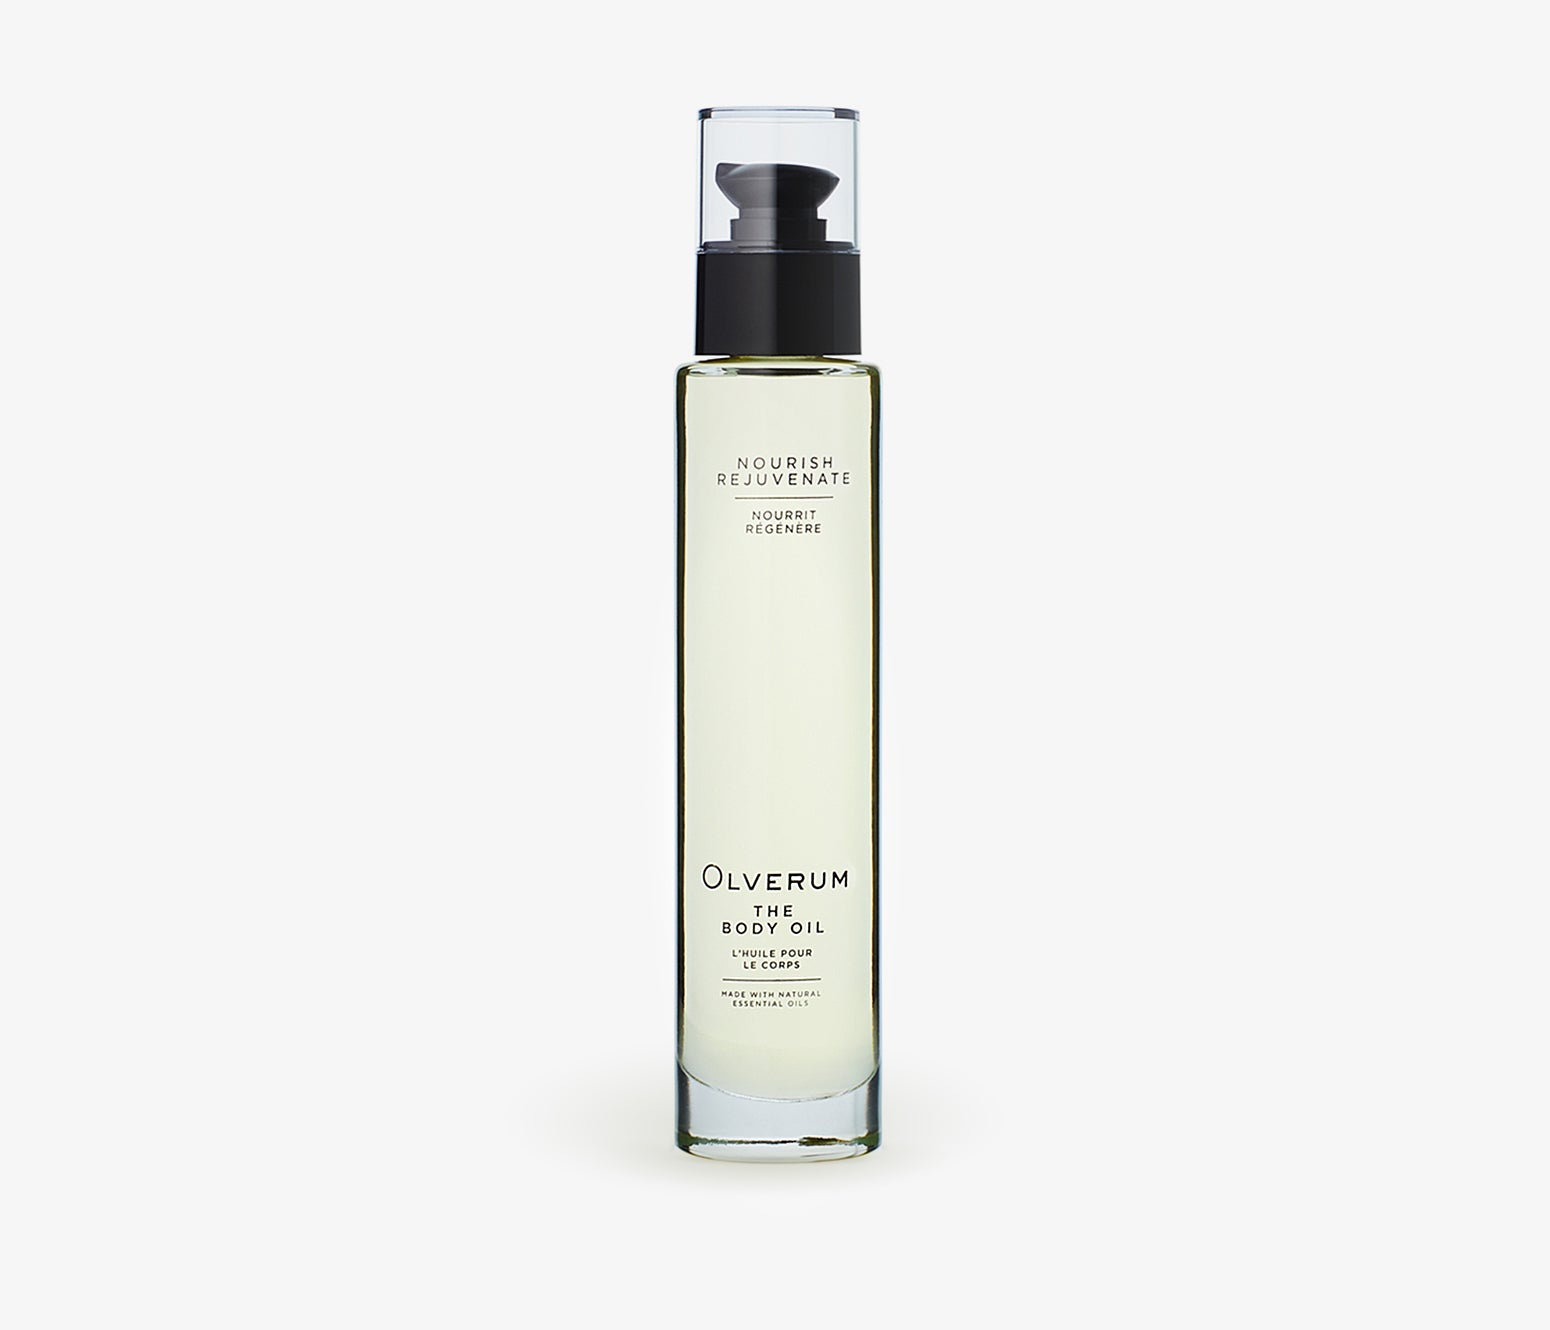 Olverum - Olverum Body Oil - 100ml - DTK003 - product image - Body Oil - Les Senteurs